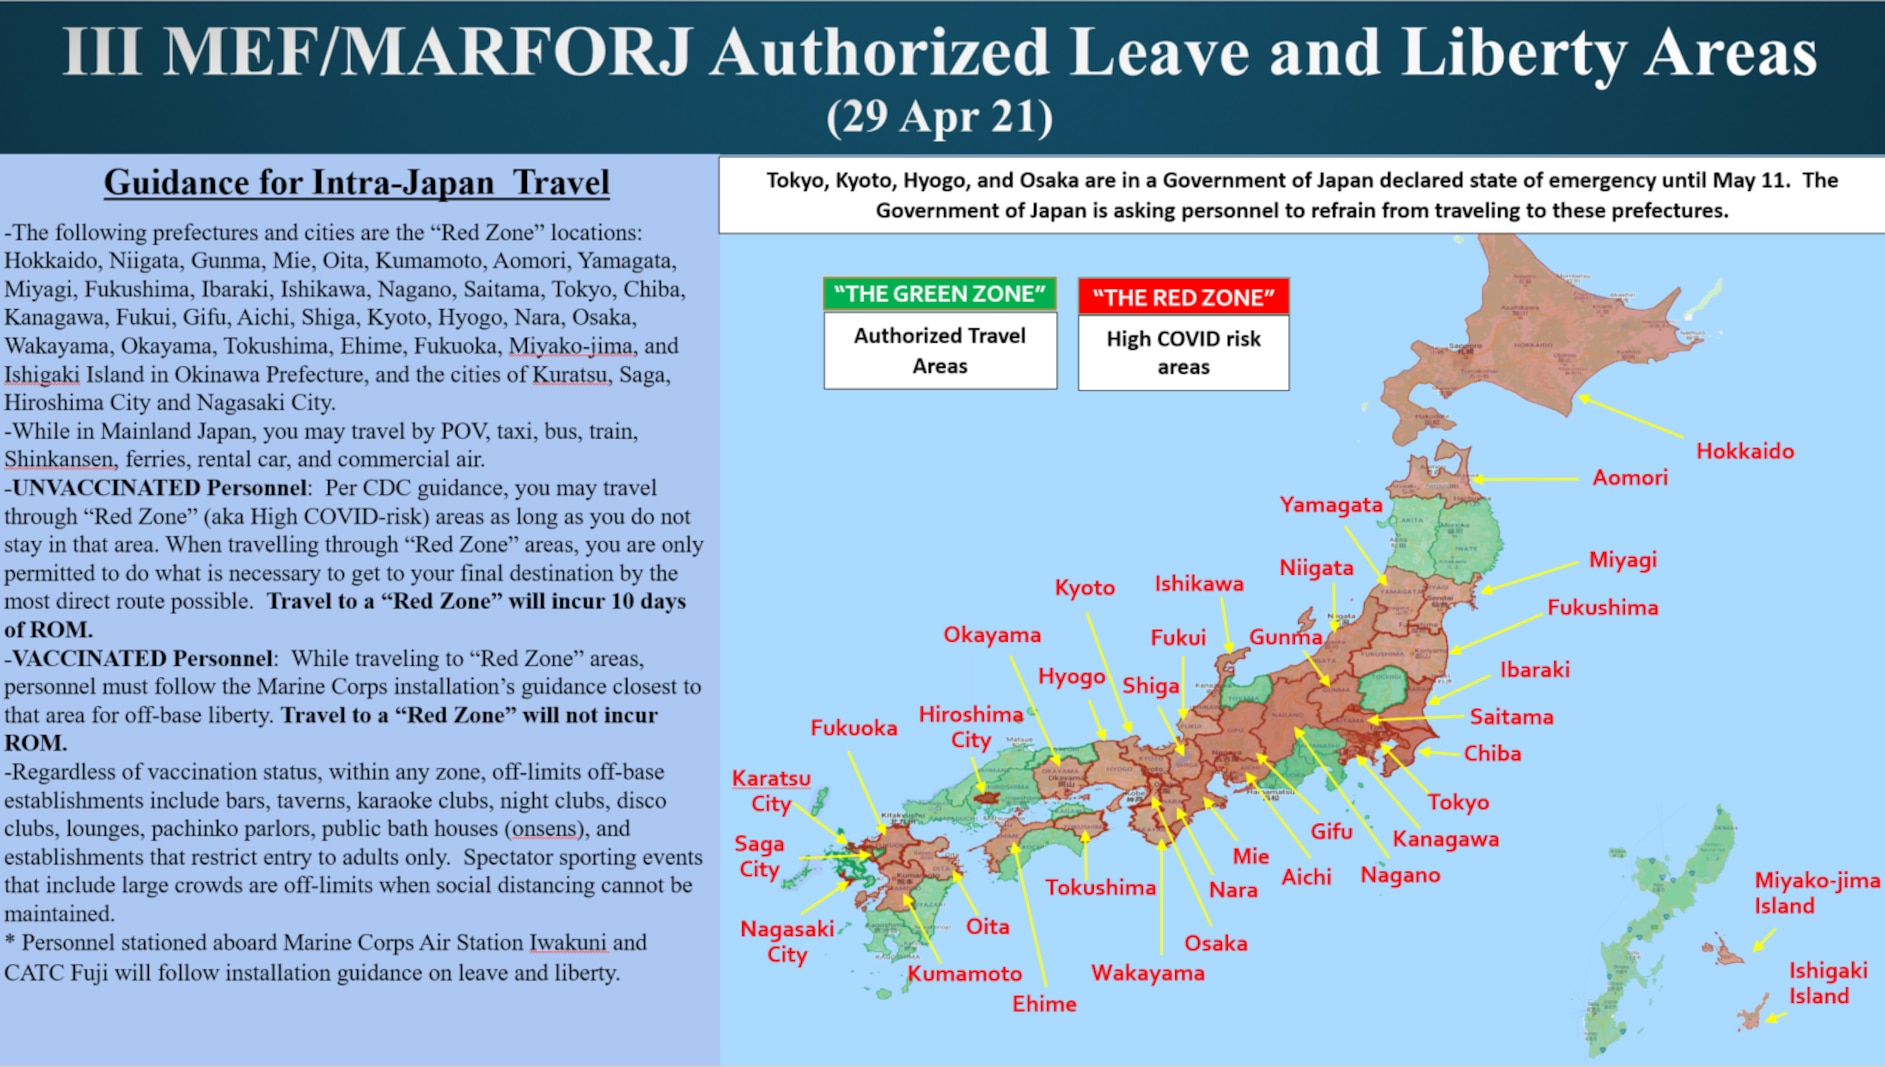 Leave and liberty areas